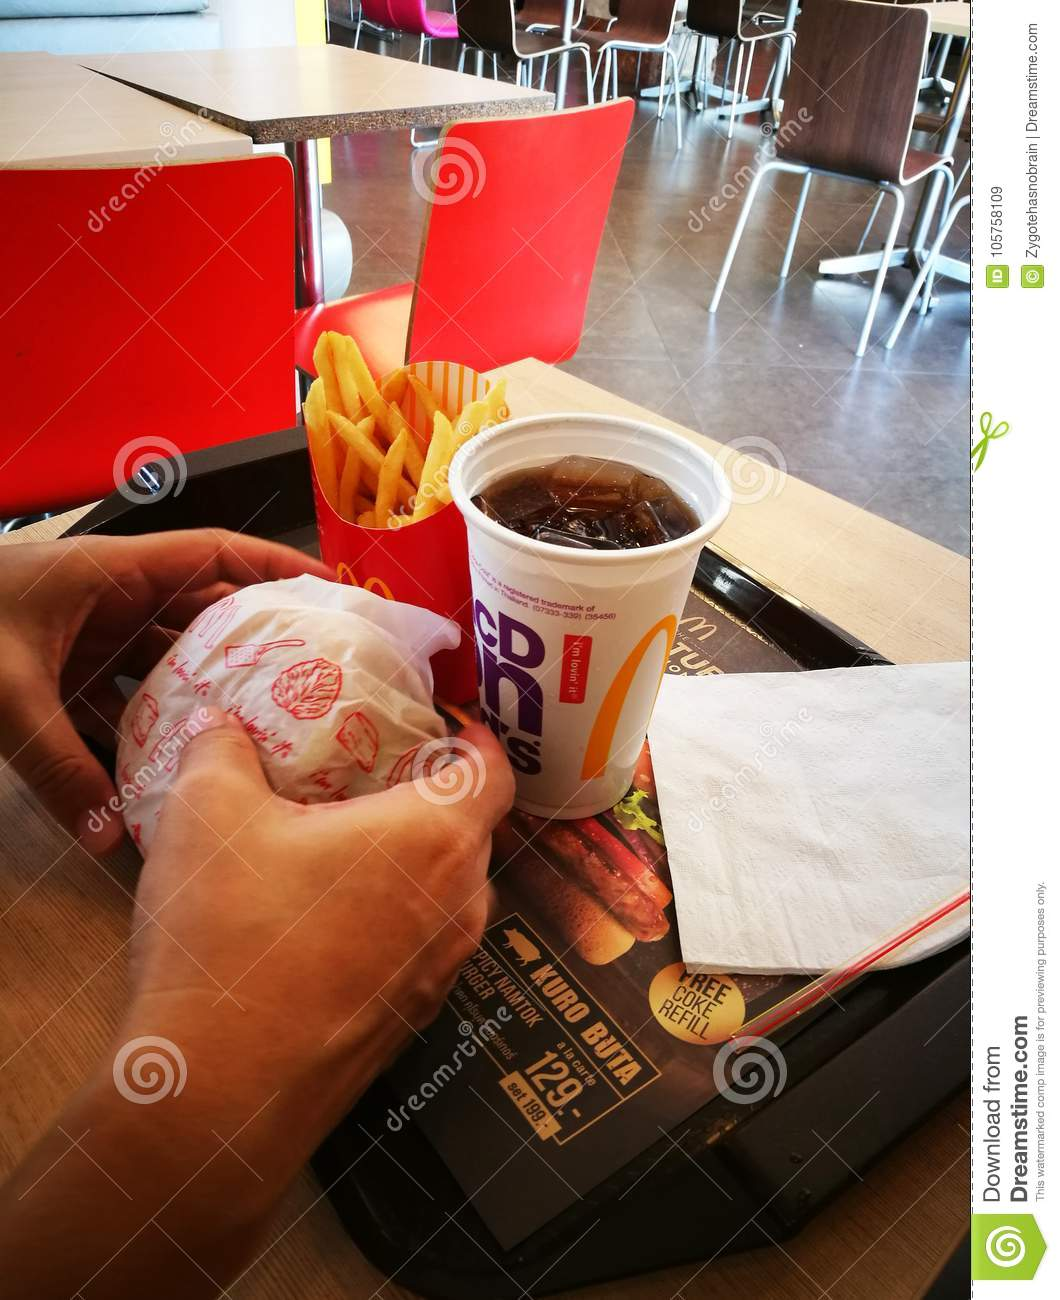 McDonald`s snack set editorial stock image  Image of burger - 105758109